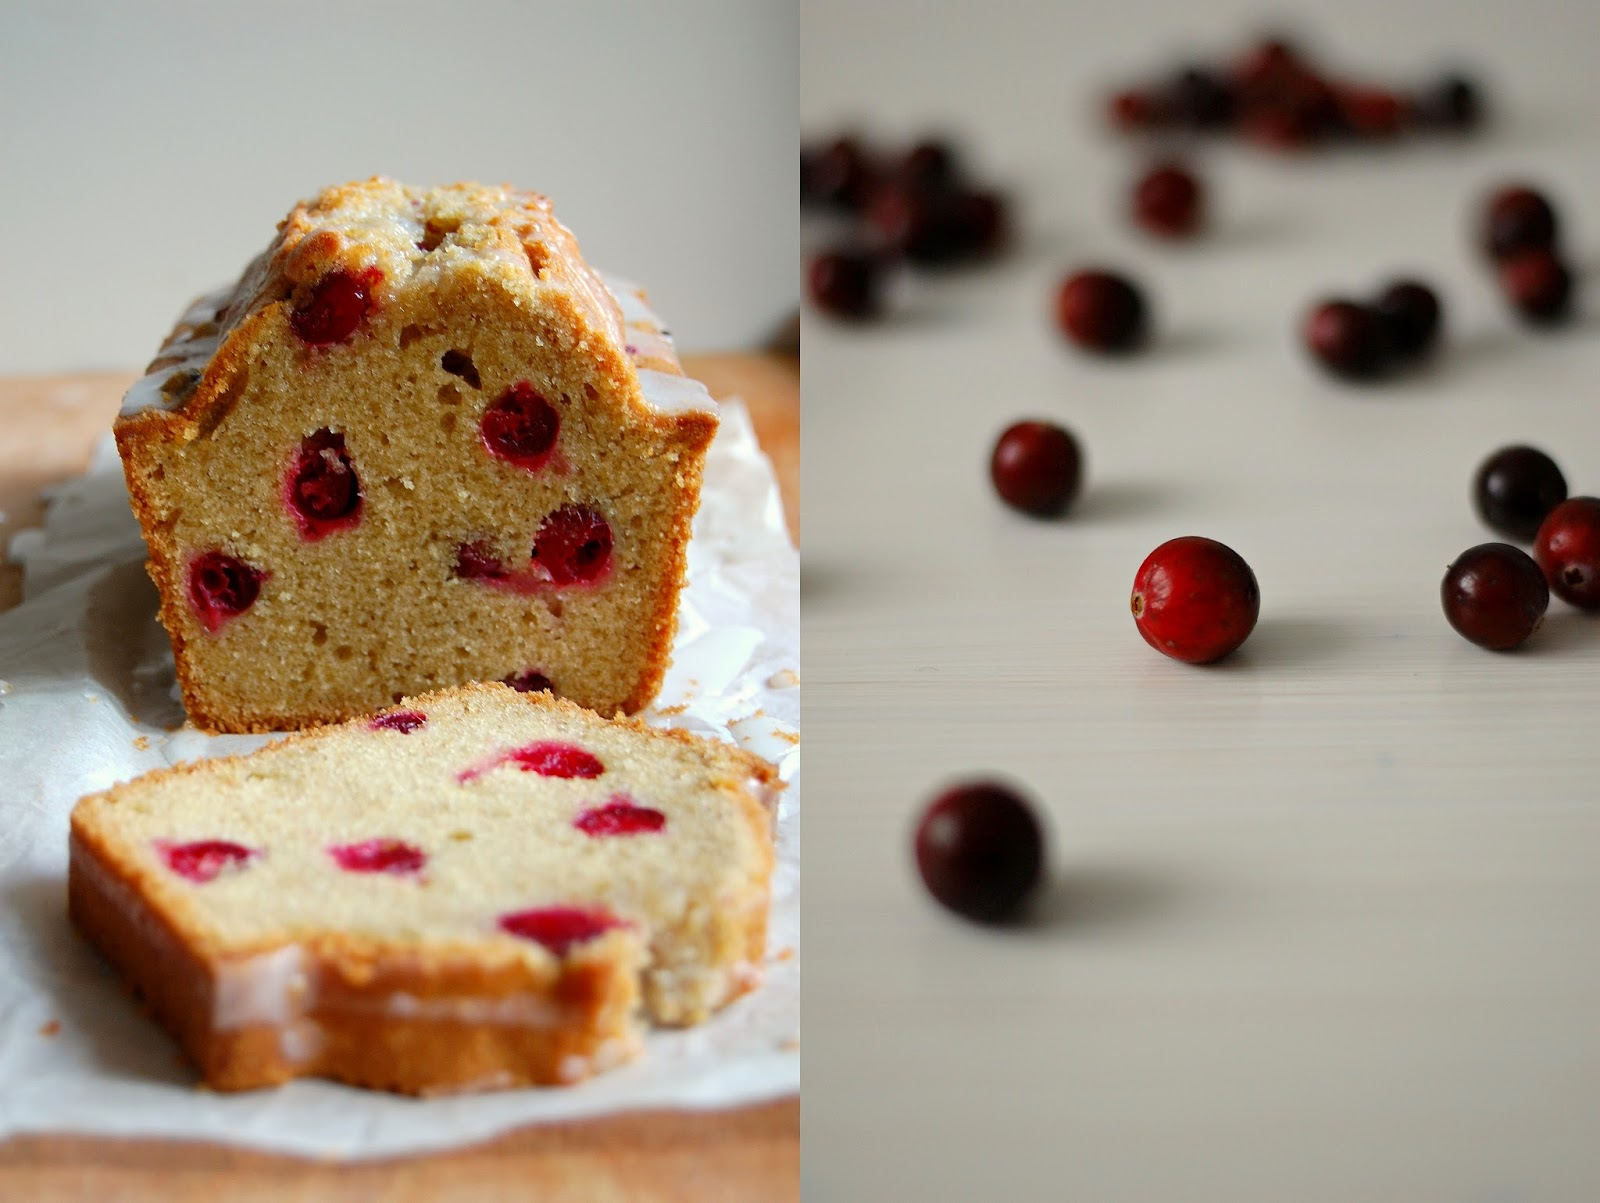 cranberries, moosbeeren, kuchen, backen, foodblog, kastenkuchen, baking, food, kipferl und krapferl, herbst, winter, autumn, recipe, lecker, yummy, cake